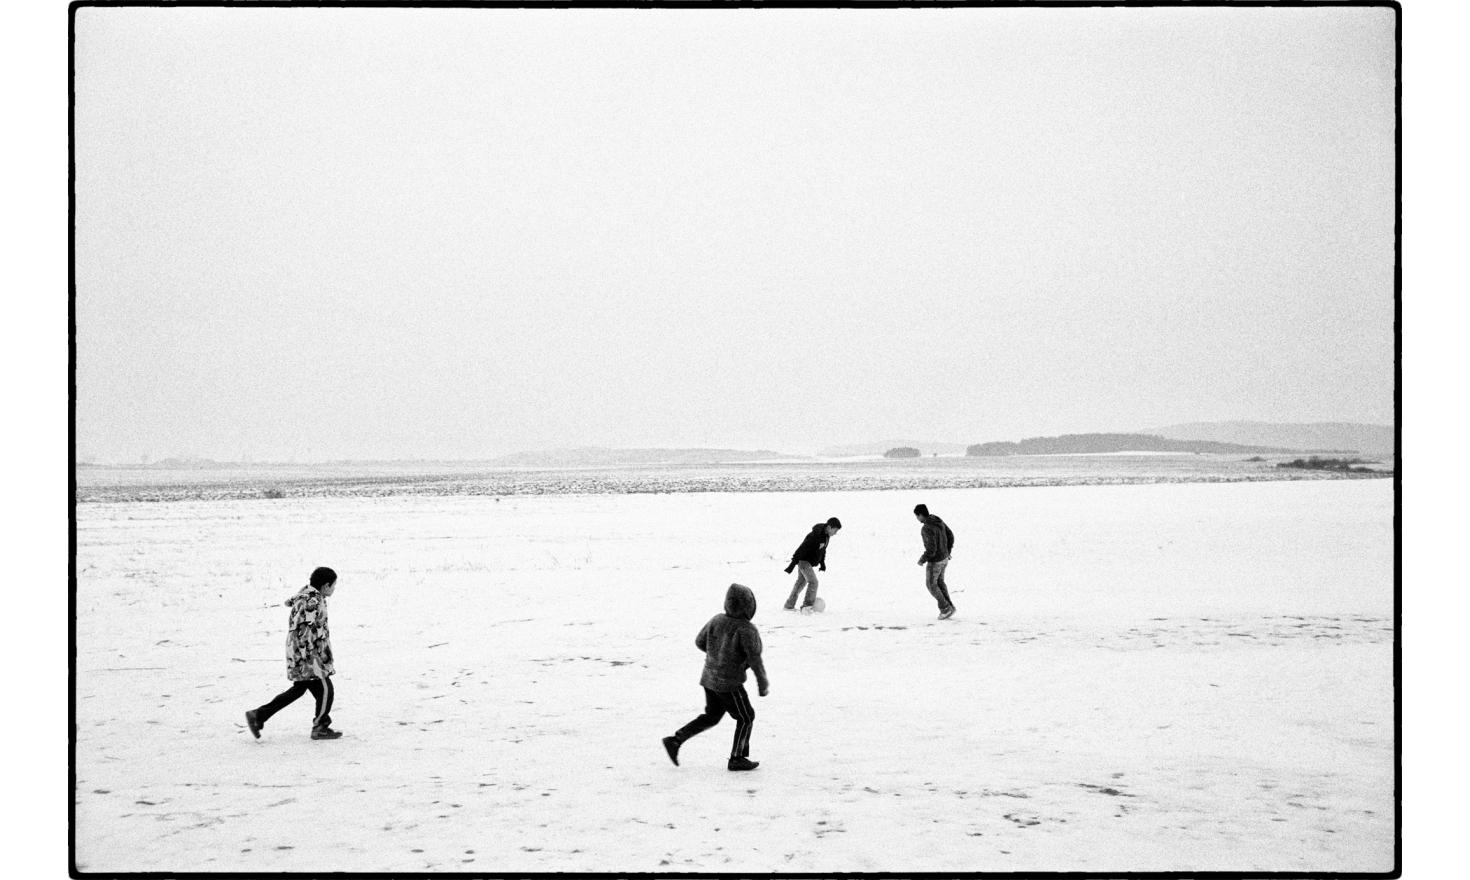 """winter is very harsh, but can be fun also, at the""""Roma osada"""", roma district of Letanovce, located at 2 kilometers from the center, at the edge of the National park of the slovak paradise. Slovakia, November 2009."""